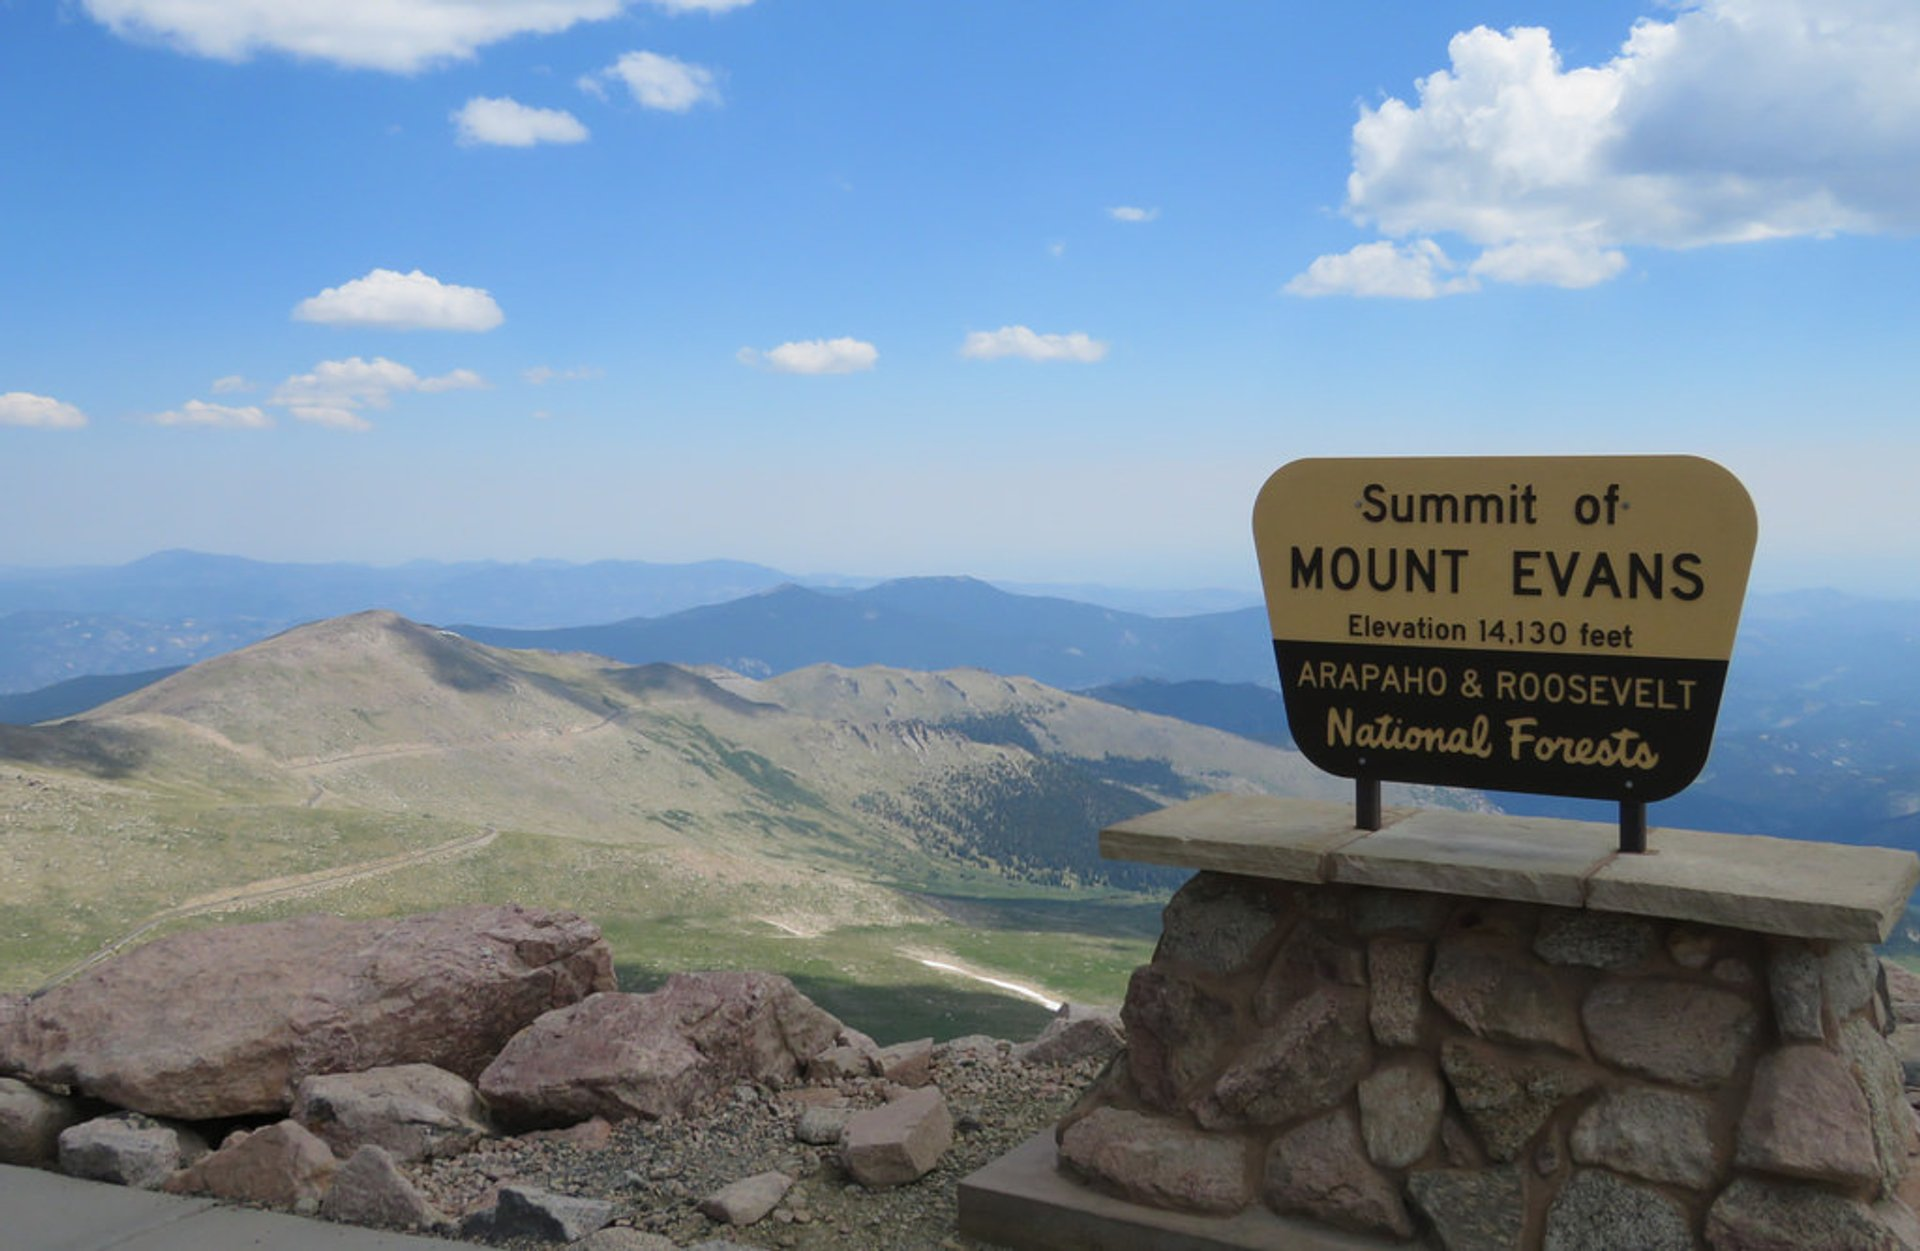 At the summit of Mount Evans 2020